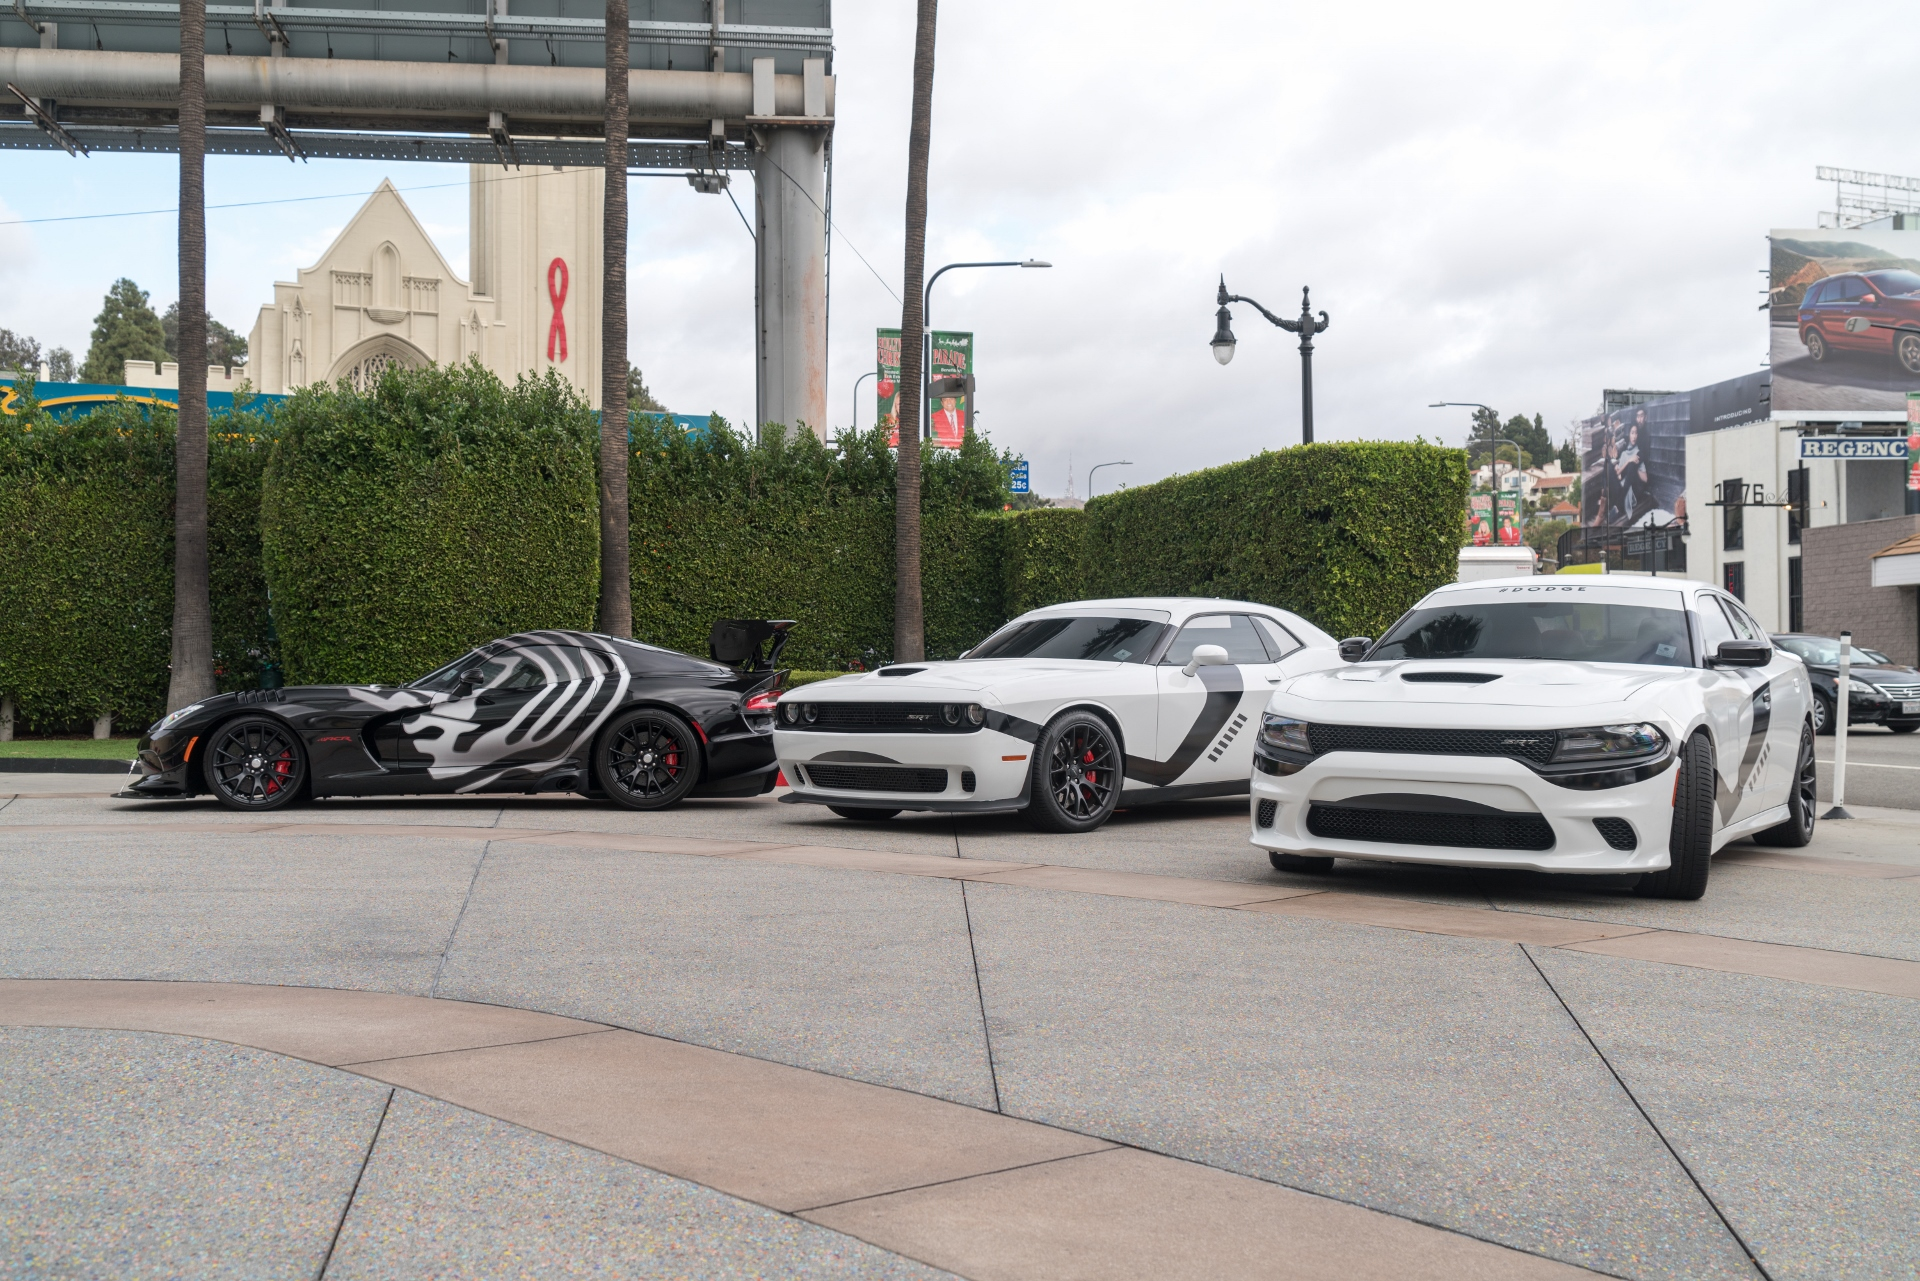 Dodge Star Wars Cars Invade Los Angeles For 'Star Wars: The Force Awakens' Premier